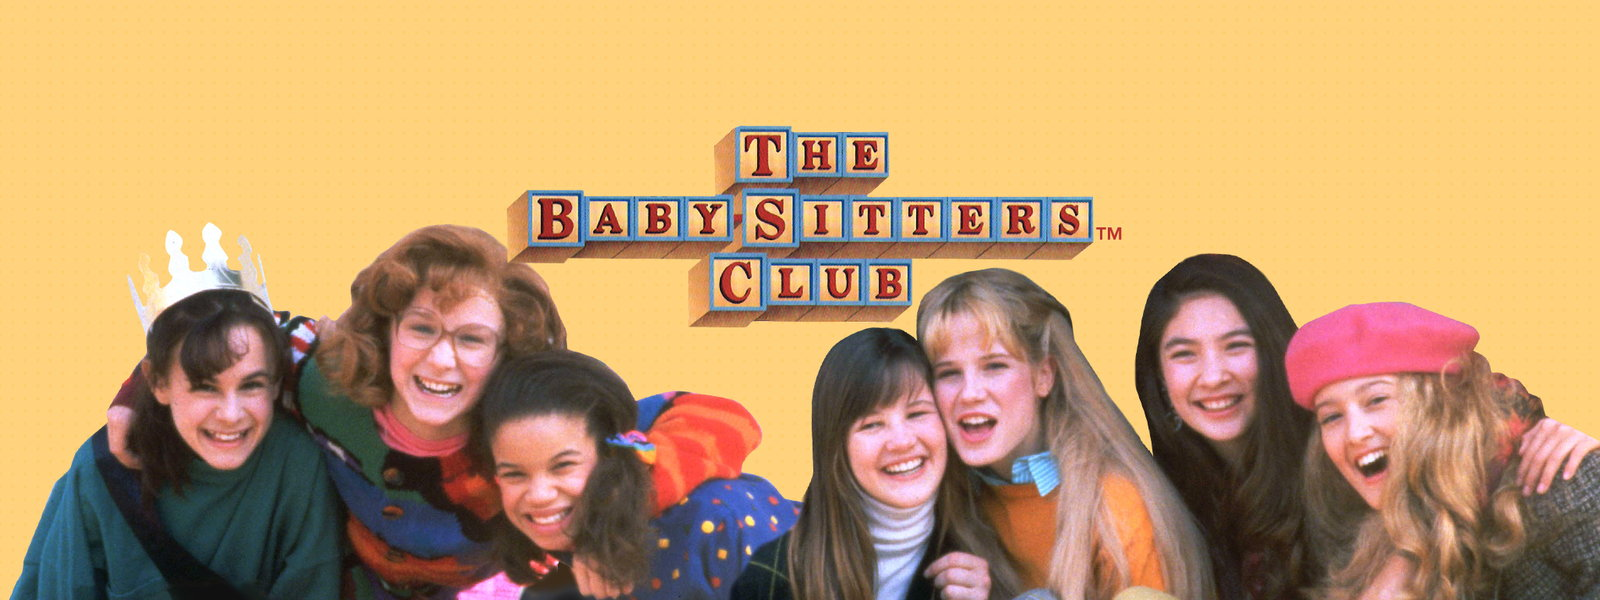 The Baby Sitters Club Tv